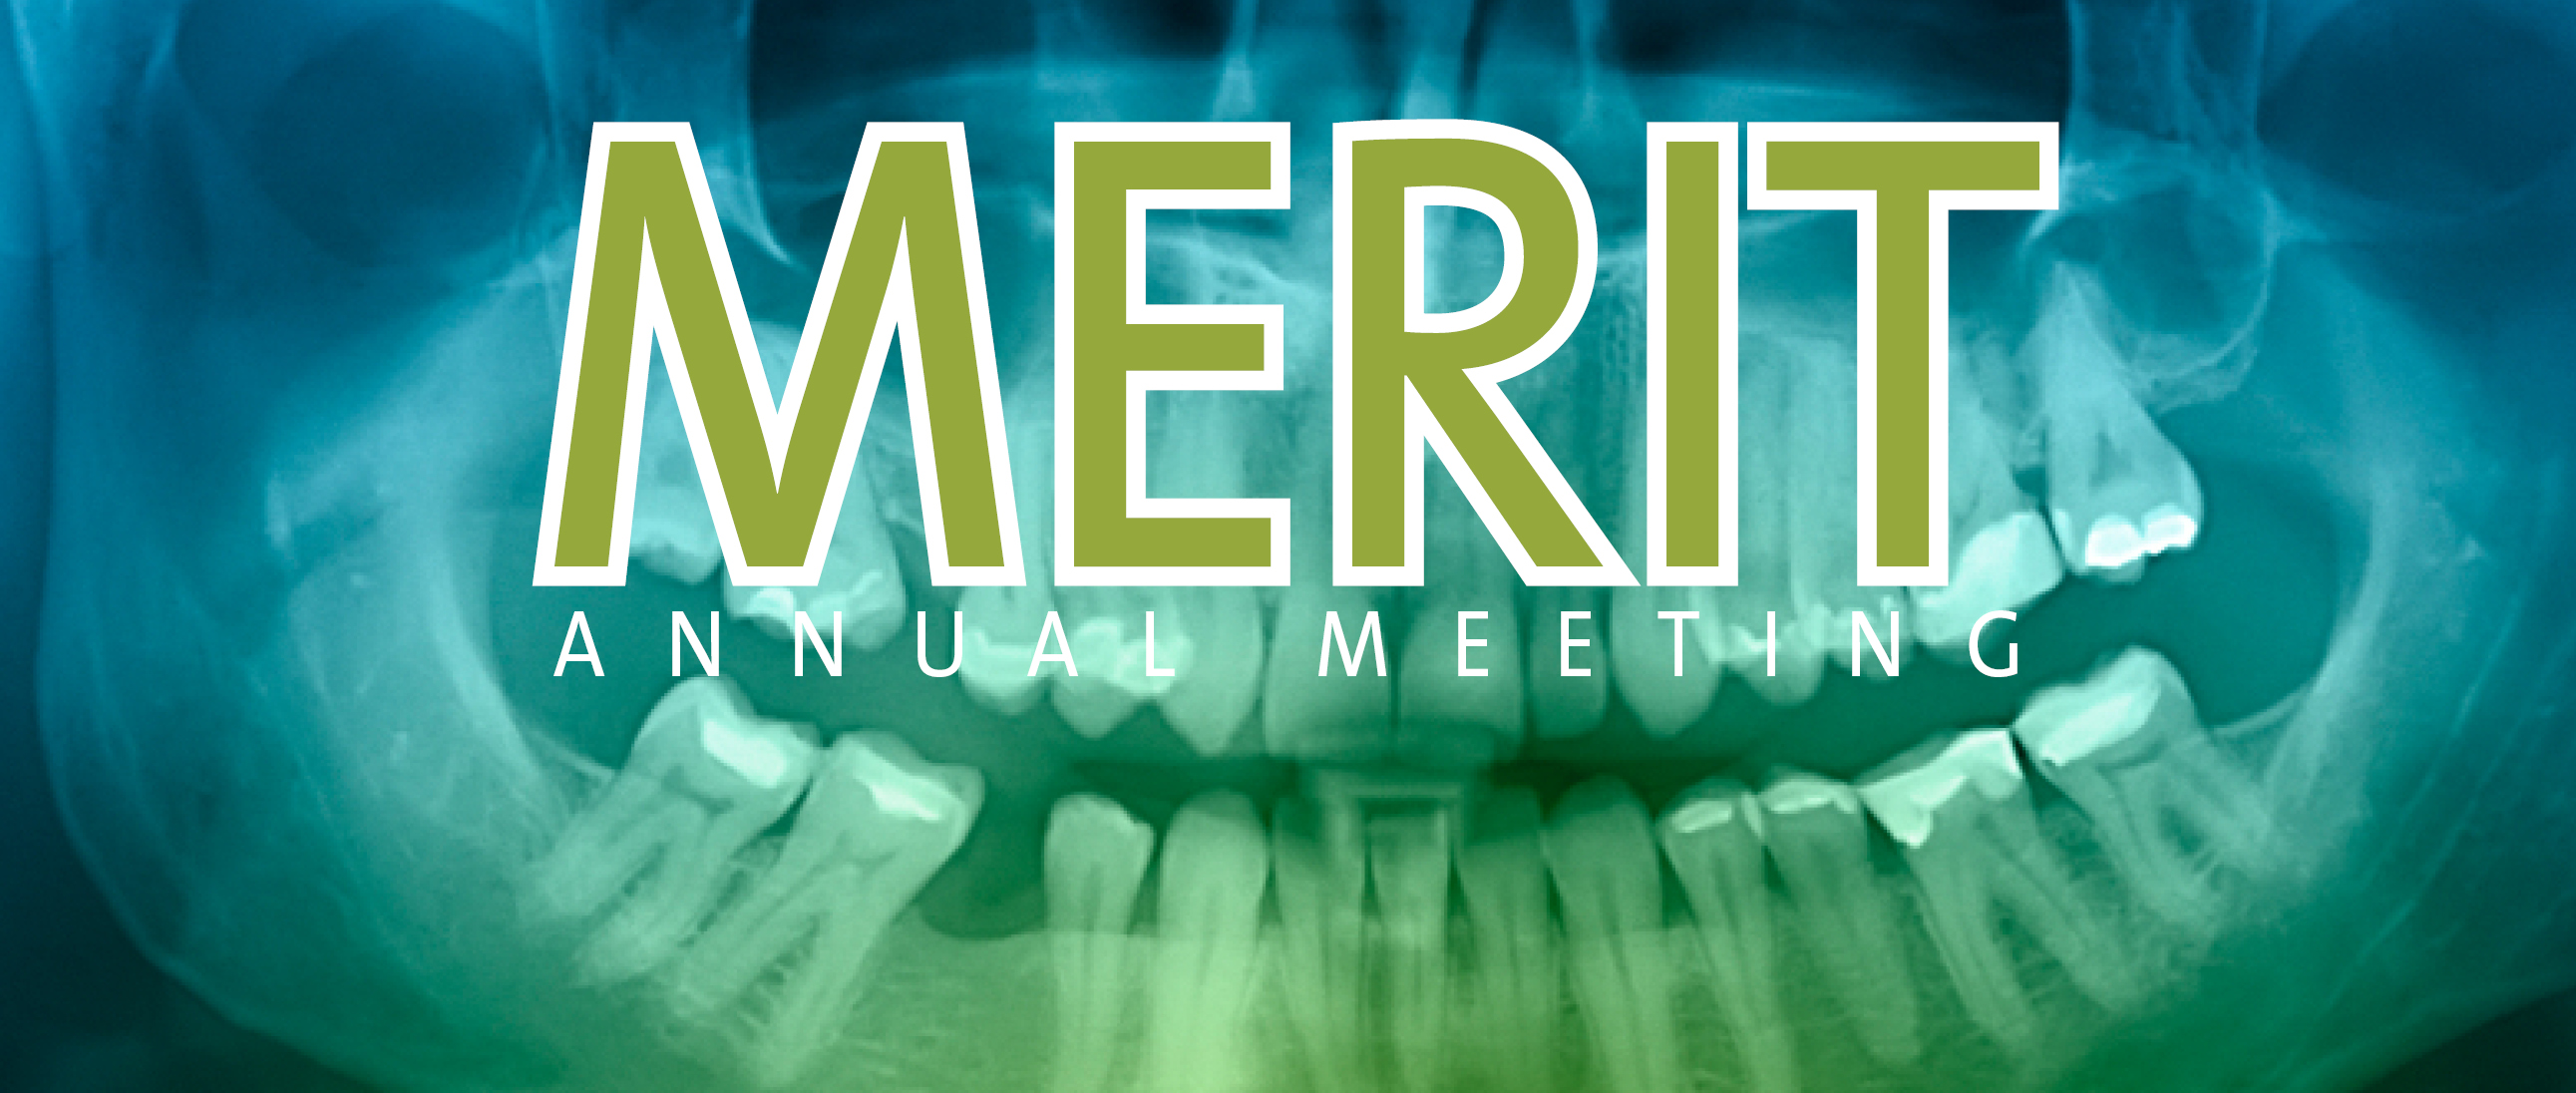 MERIT Annual Meeting banner